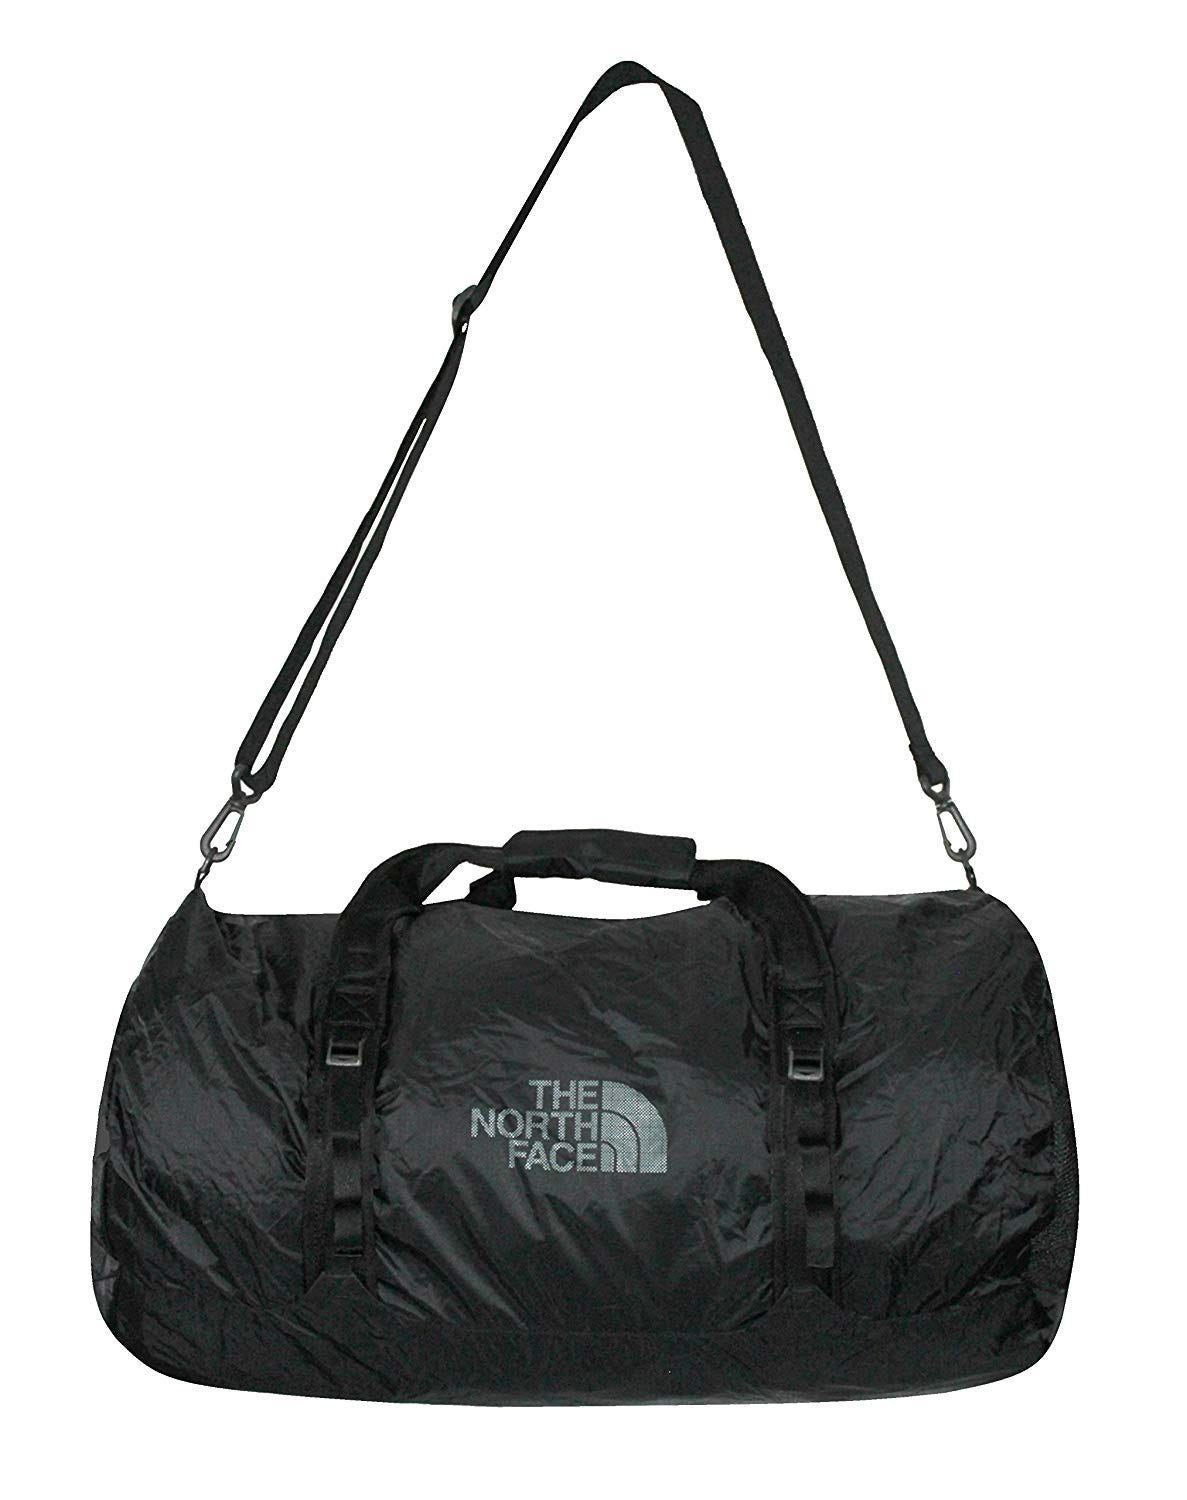 49c6d3c3b Best Gym Bags For Women - Fitness Totes